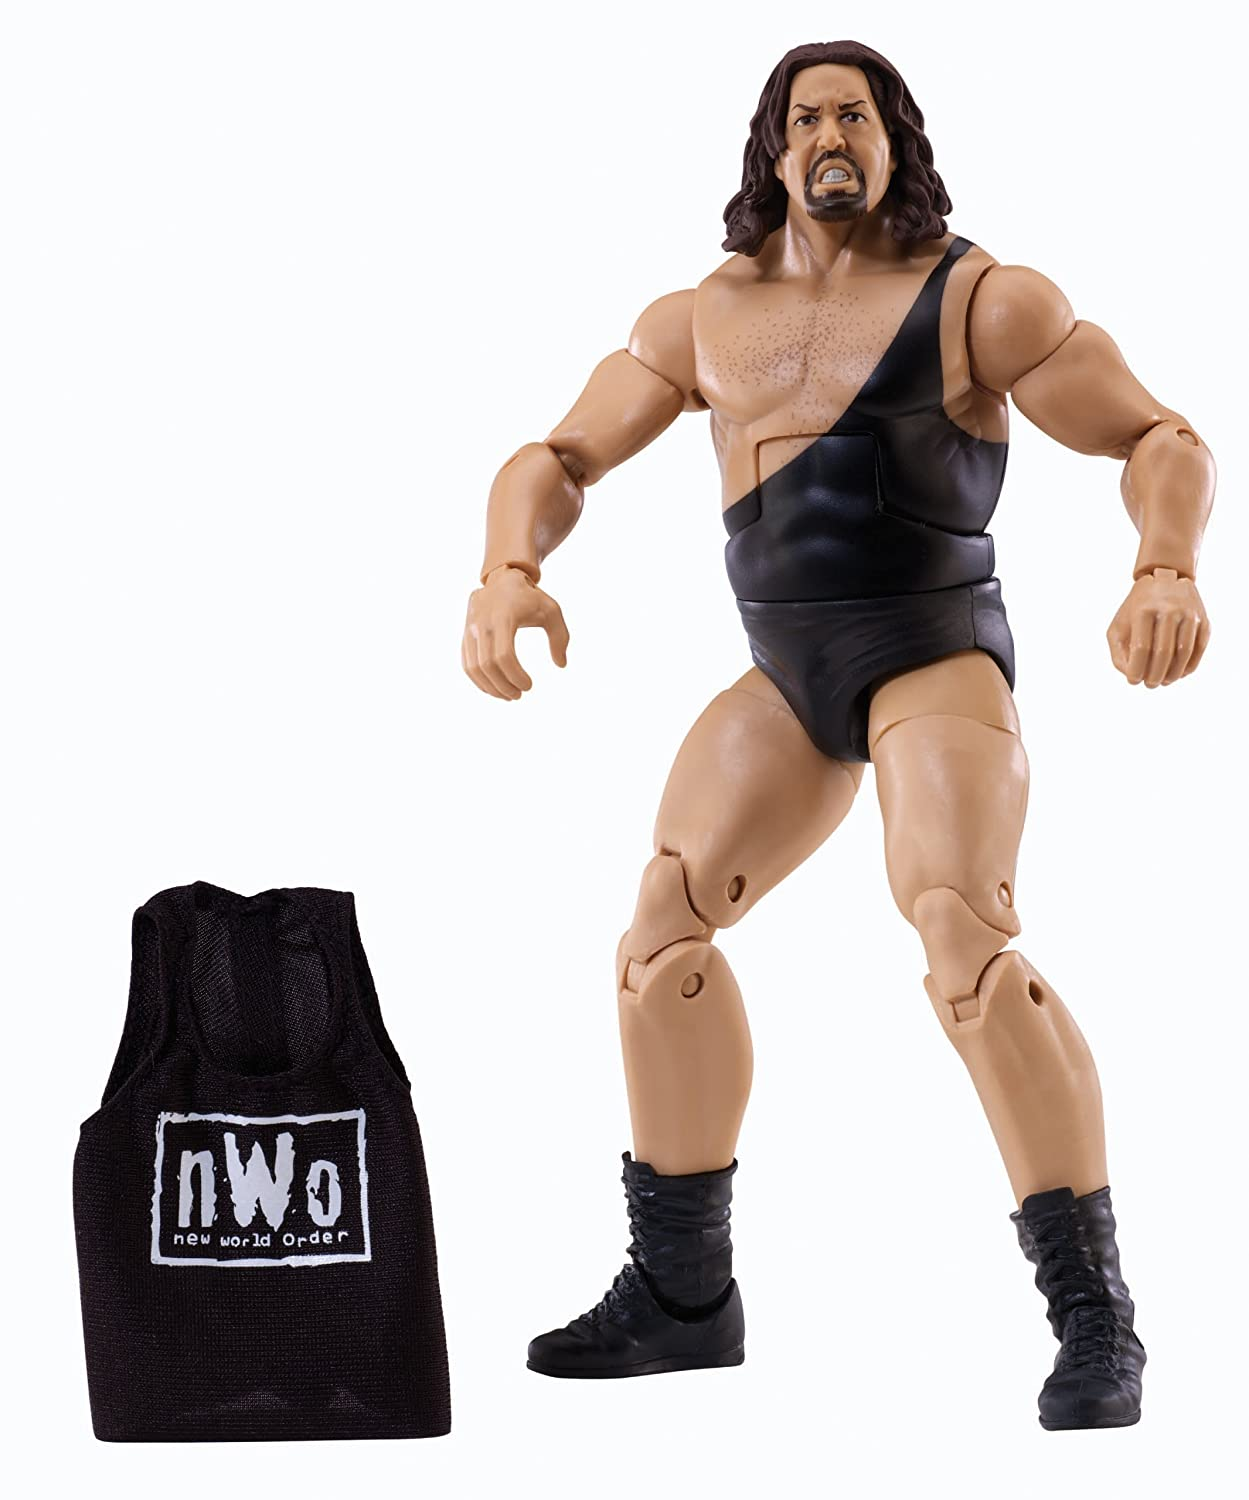 WWE ELITE SERIES 22 GIANT FIGURE